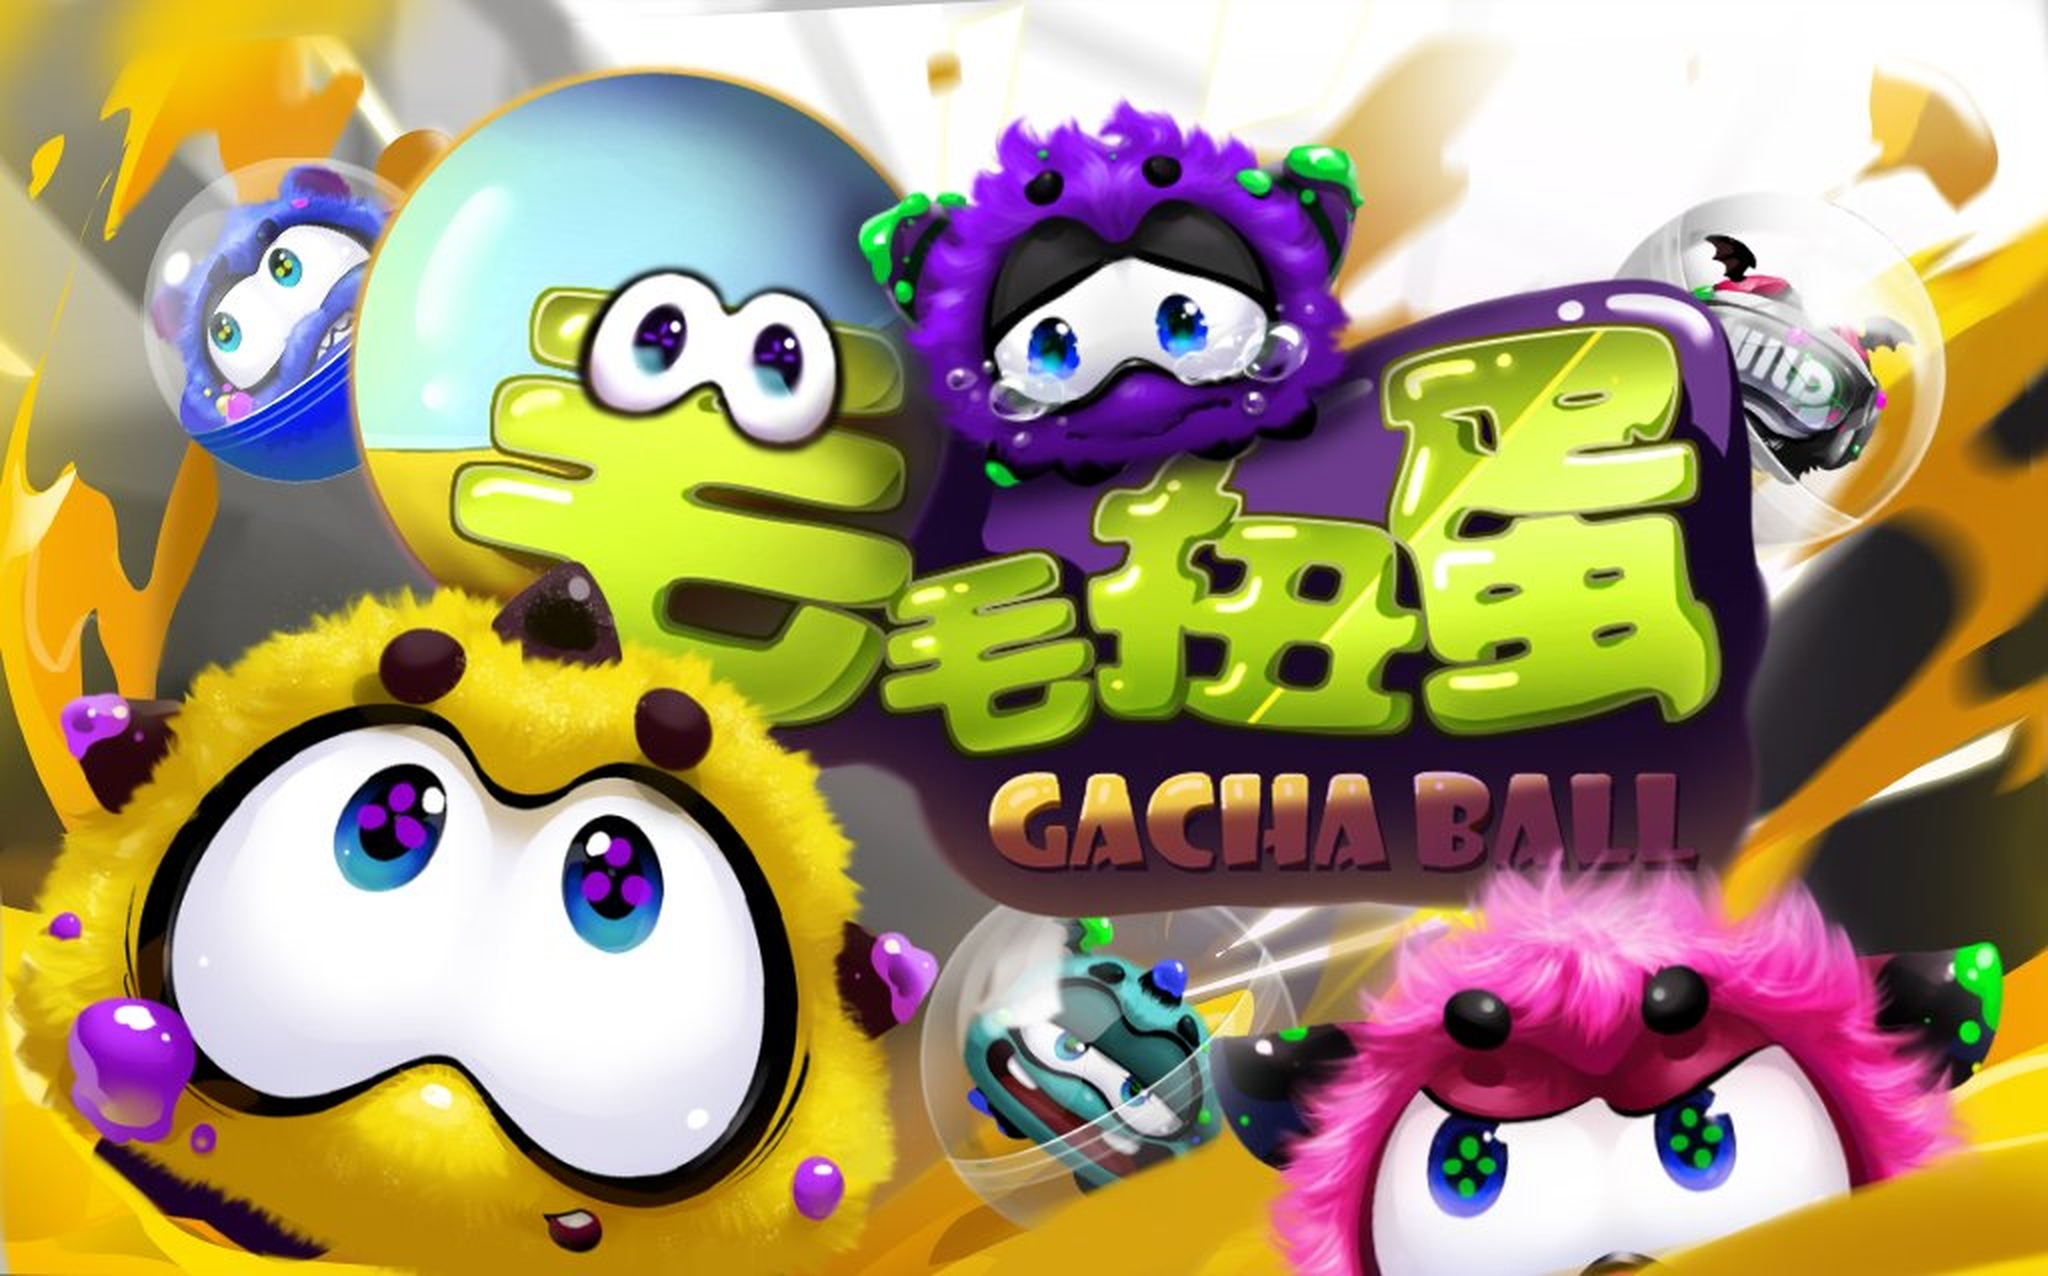 Se Gacha Ball Online Slot Demo Game, AllWaySpin